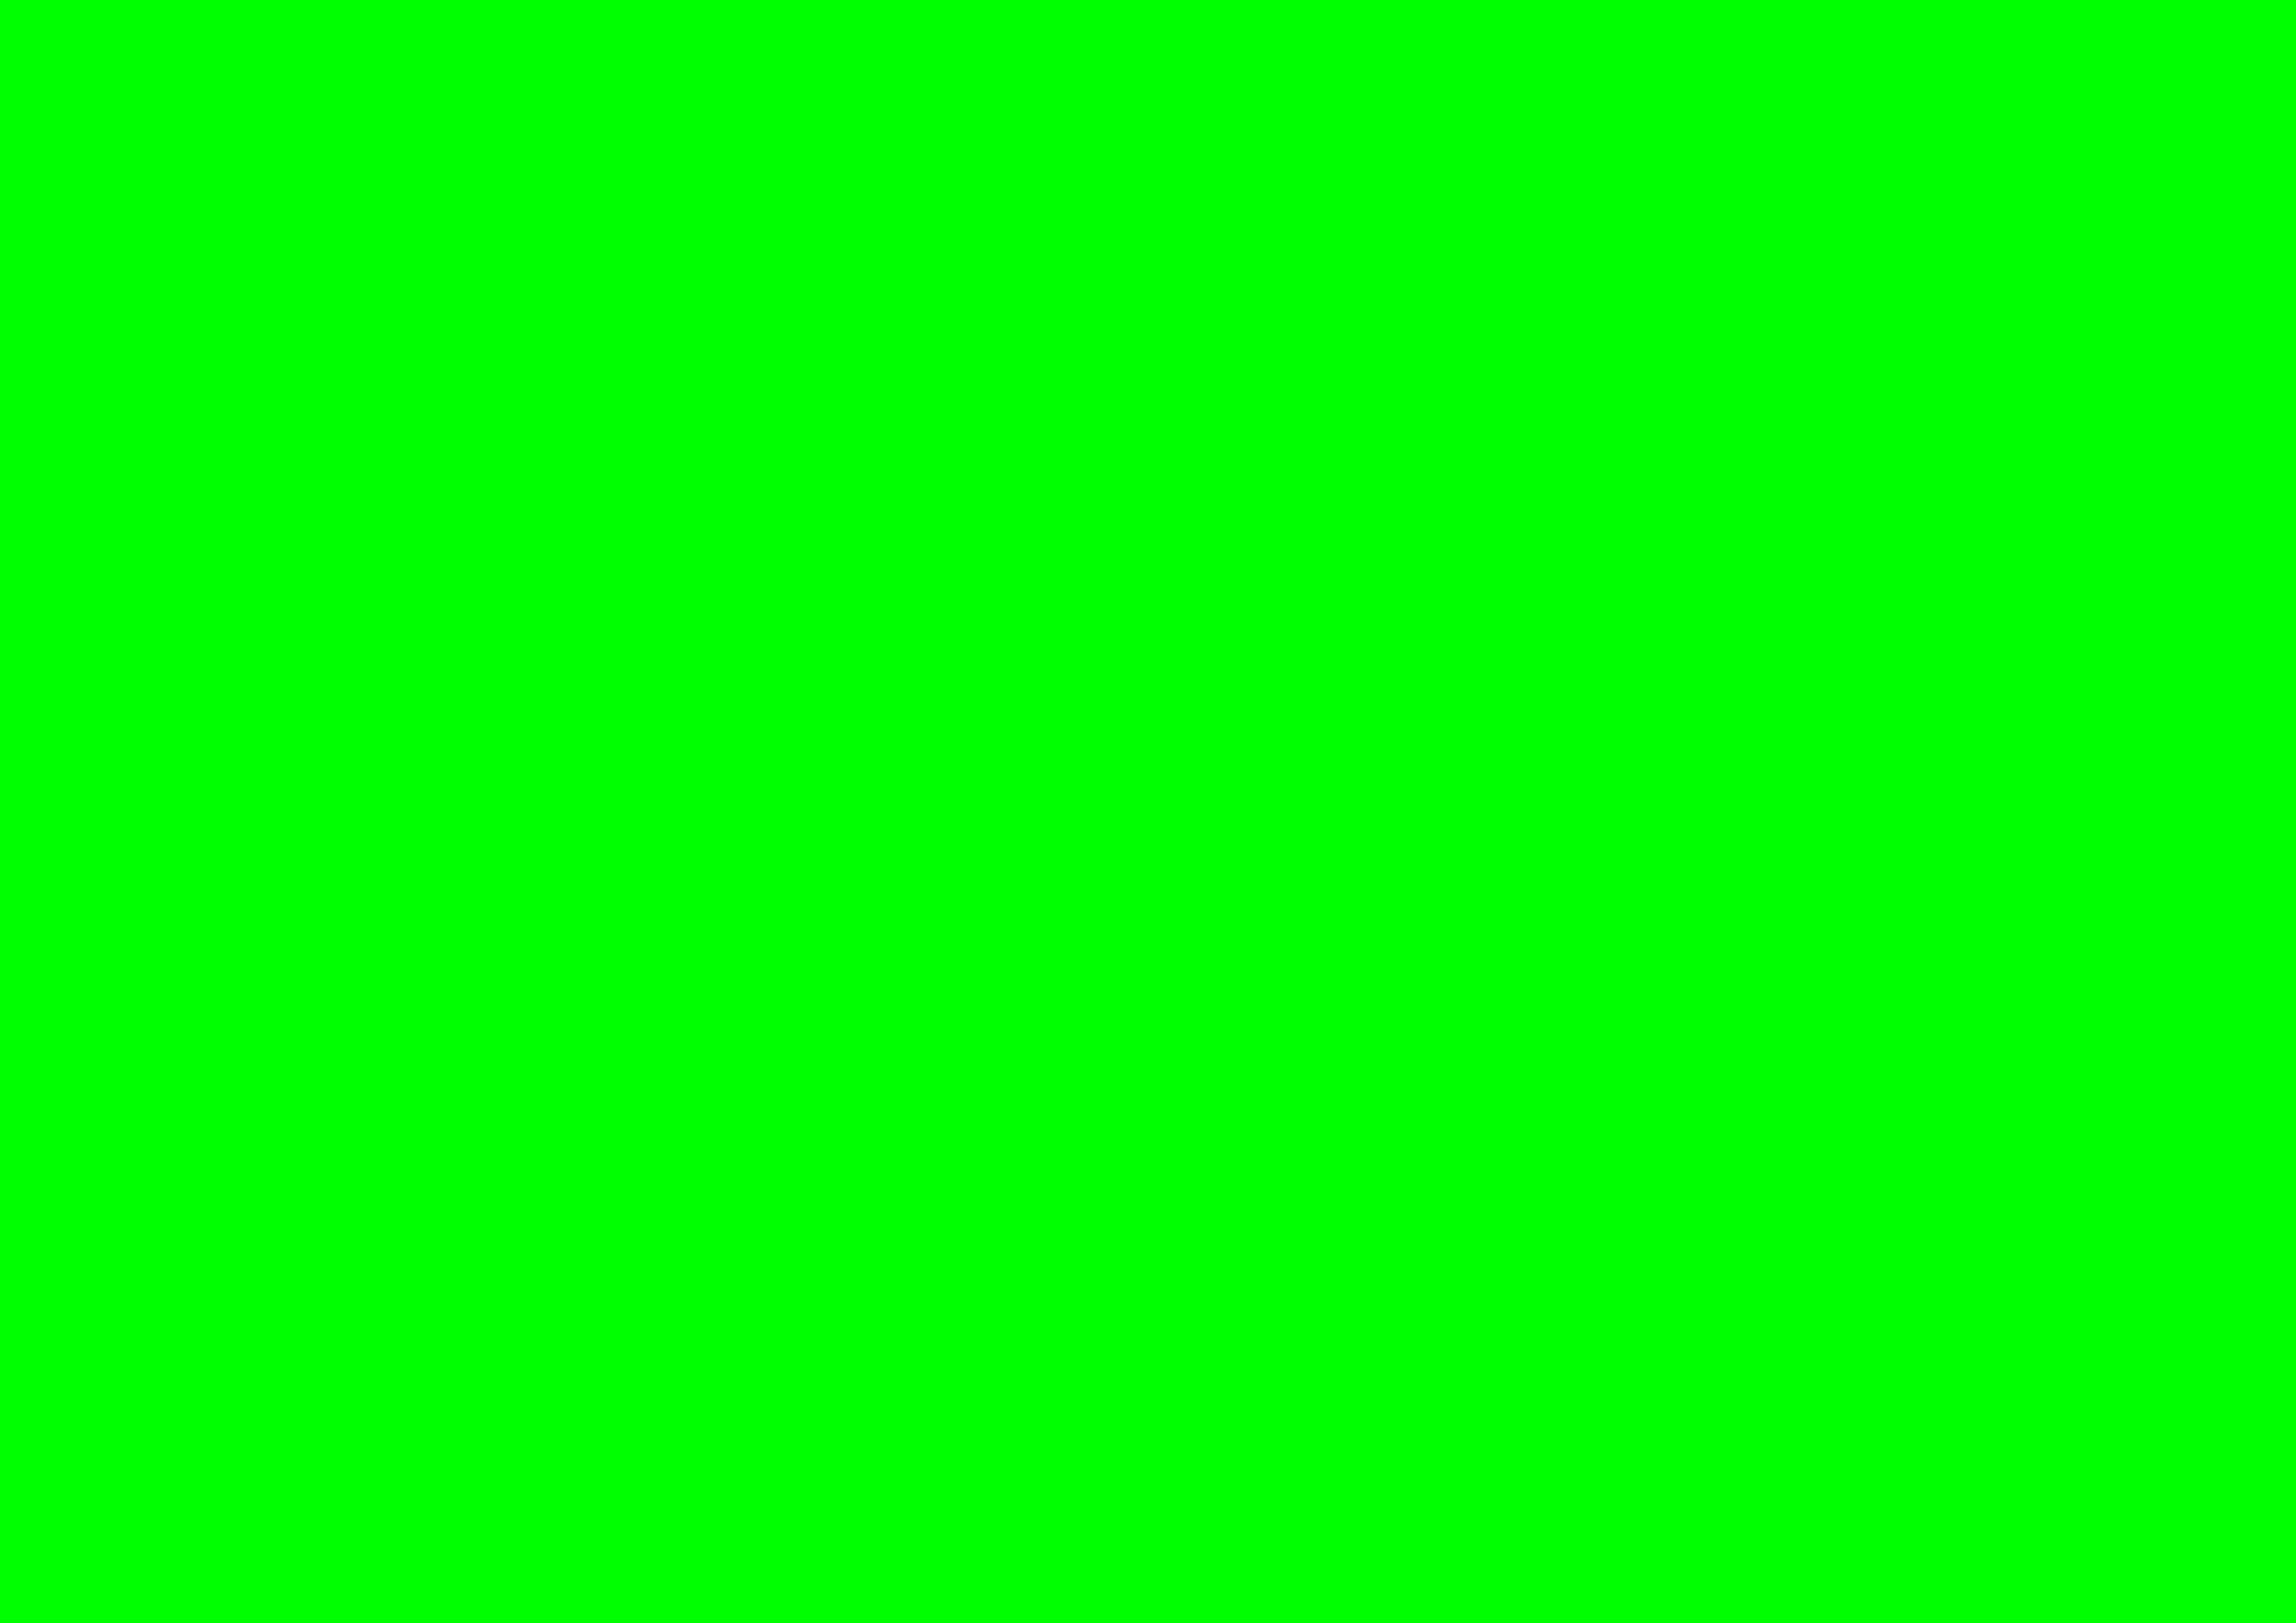 3508x2480 Lime Web Green Solid Color Background